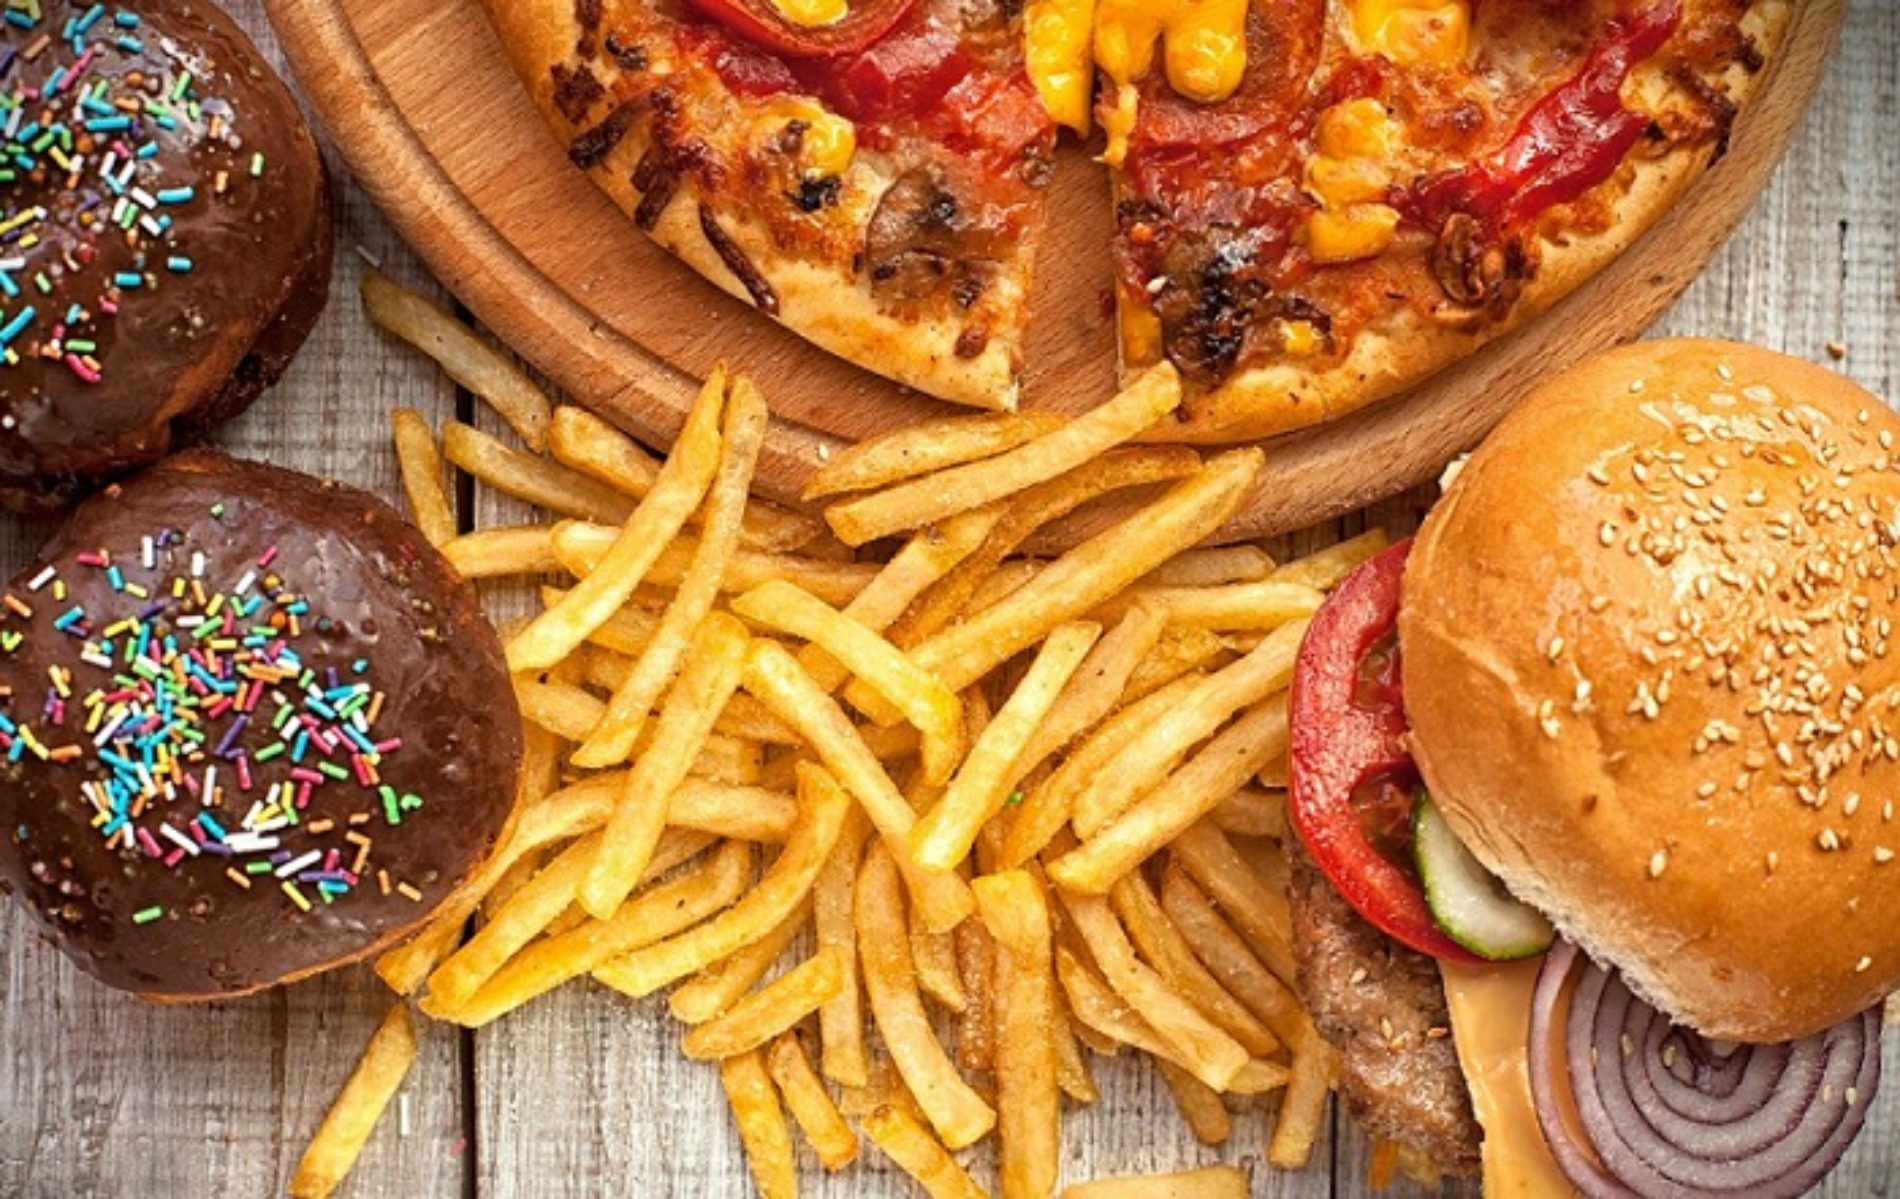 Can Eating Too Much Fatty Food Turn You Gay? This Study Seems To Think So.